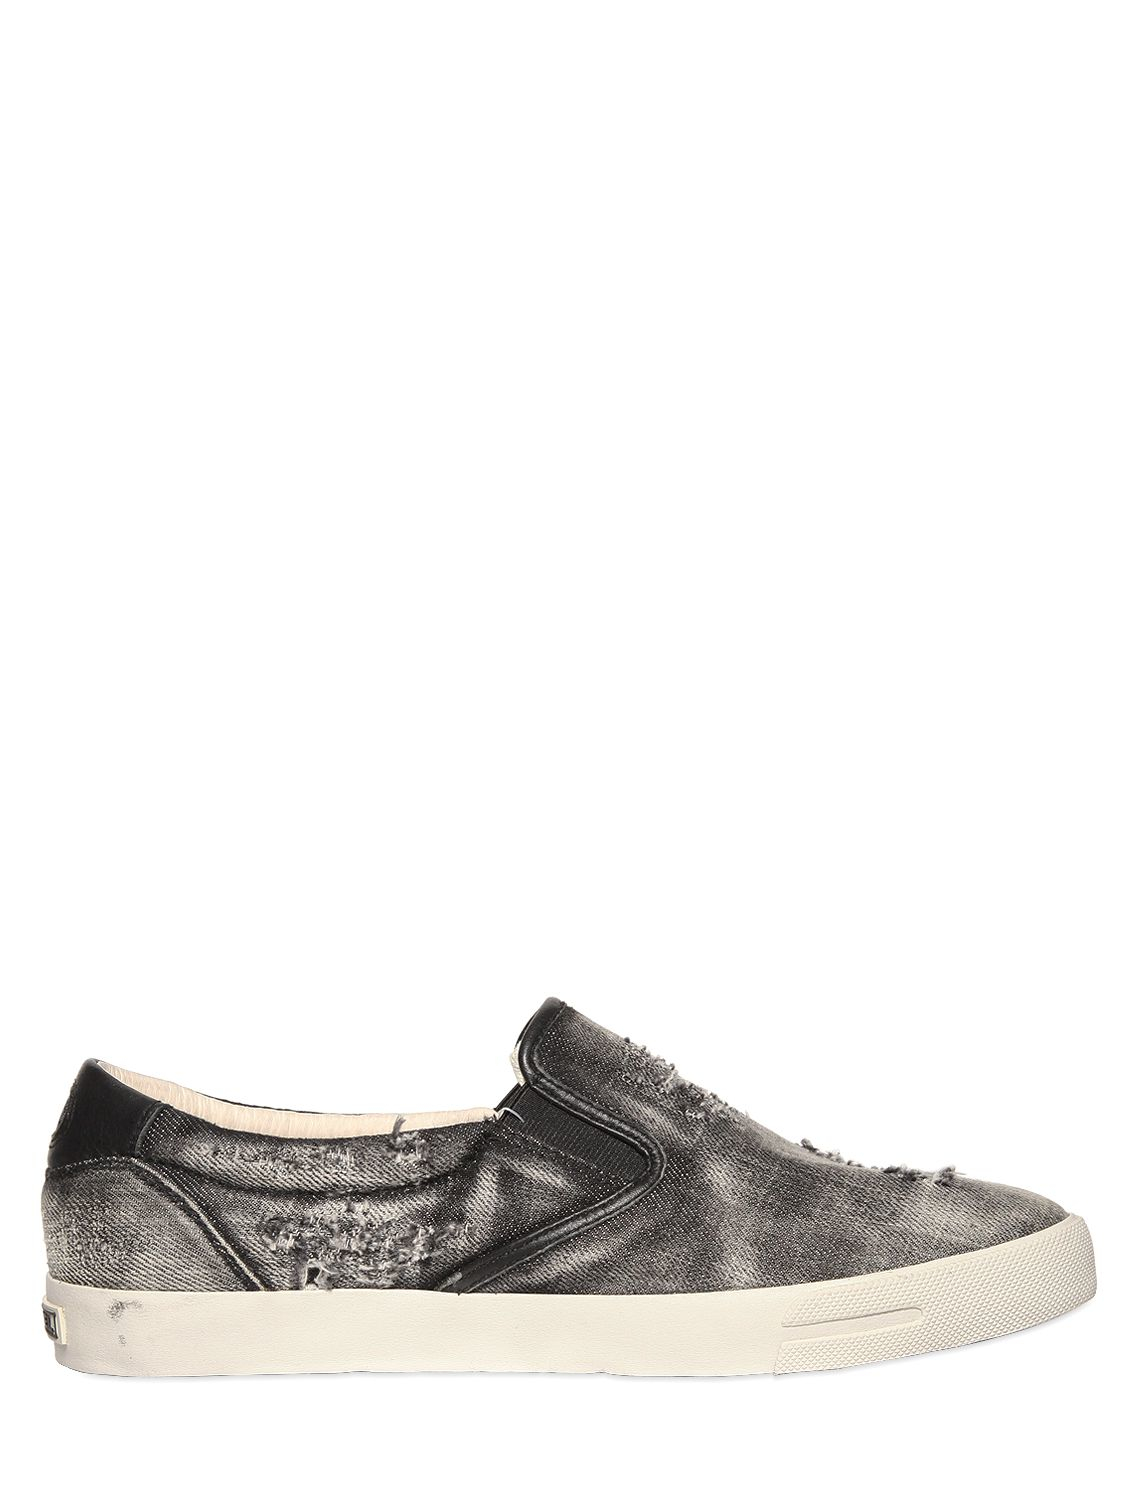 Diesel slip-on sneakers 2015 new online buy cheap cheapest price SAM9SY